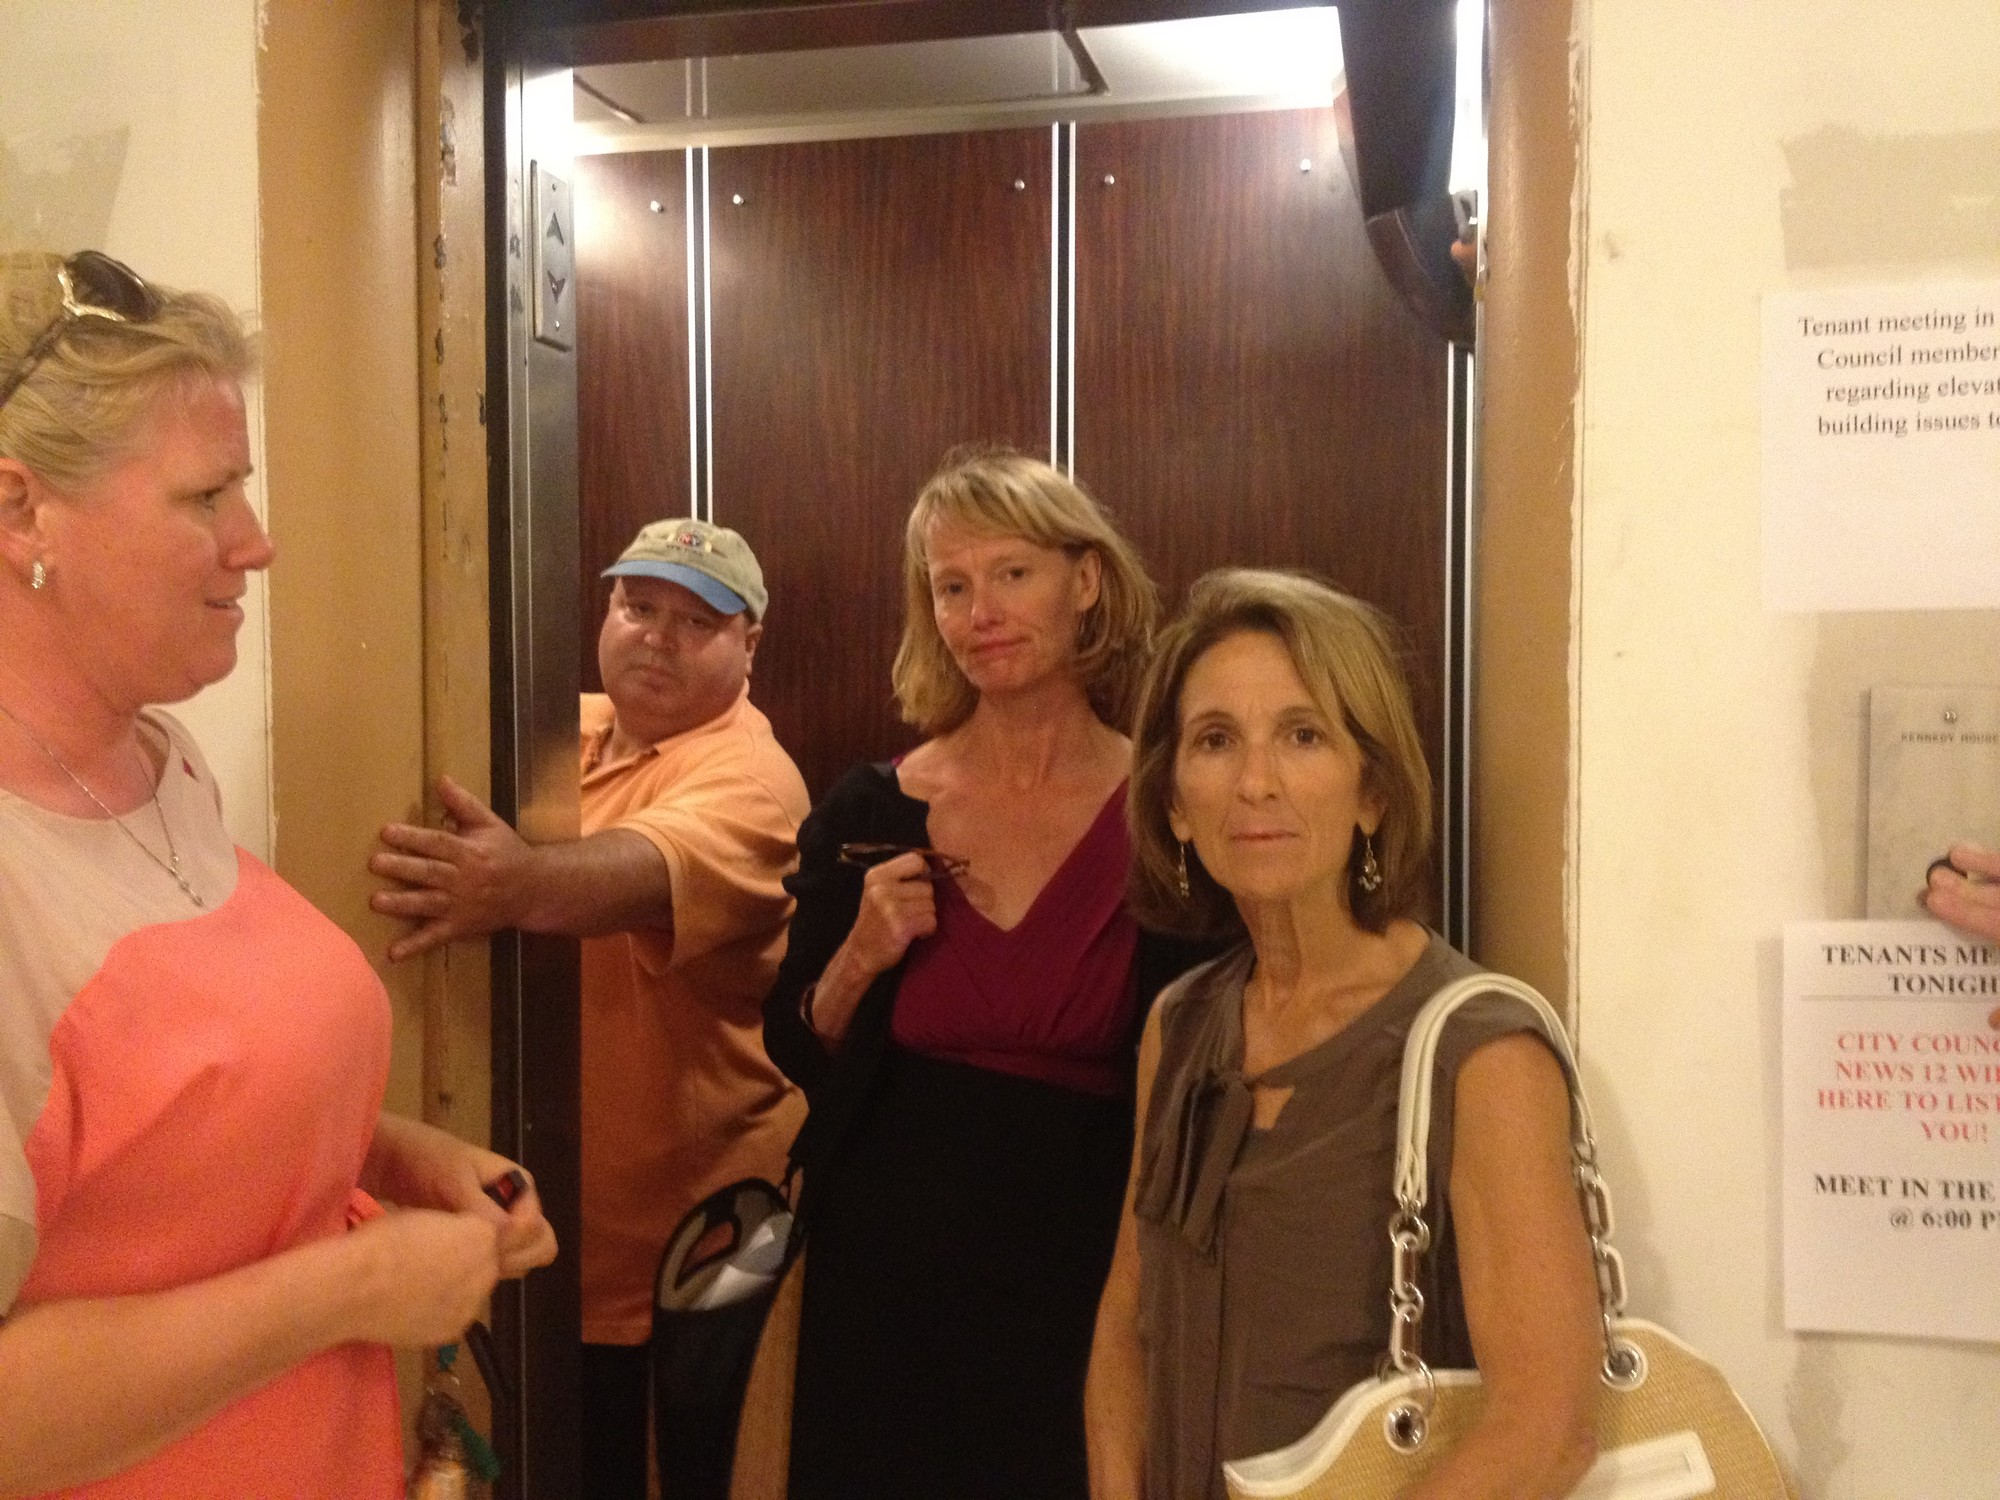 City council members Eileen Goggin, third from left, and Fran Adelson, right, inspected the conditions at 10 Monroe Blvd., on a day when the elevator happened to be working. They said that the city is seeking to impose tougher penalties on negligent landlords.